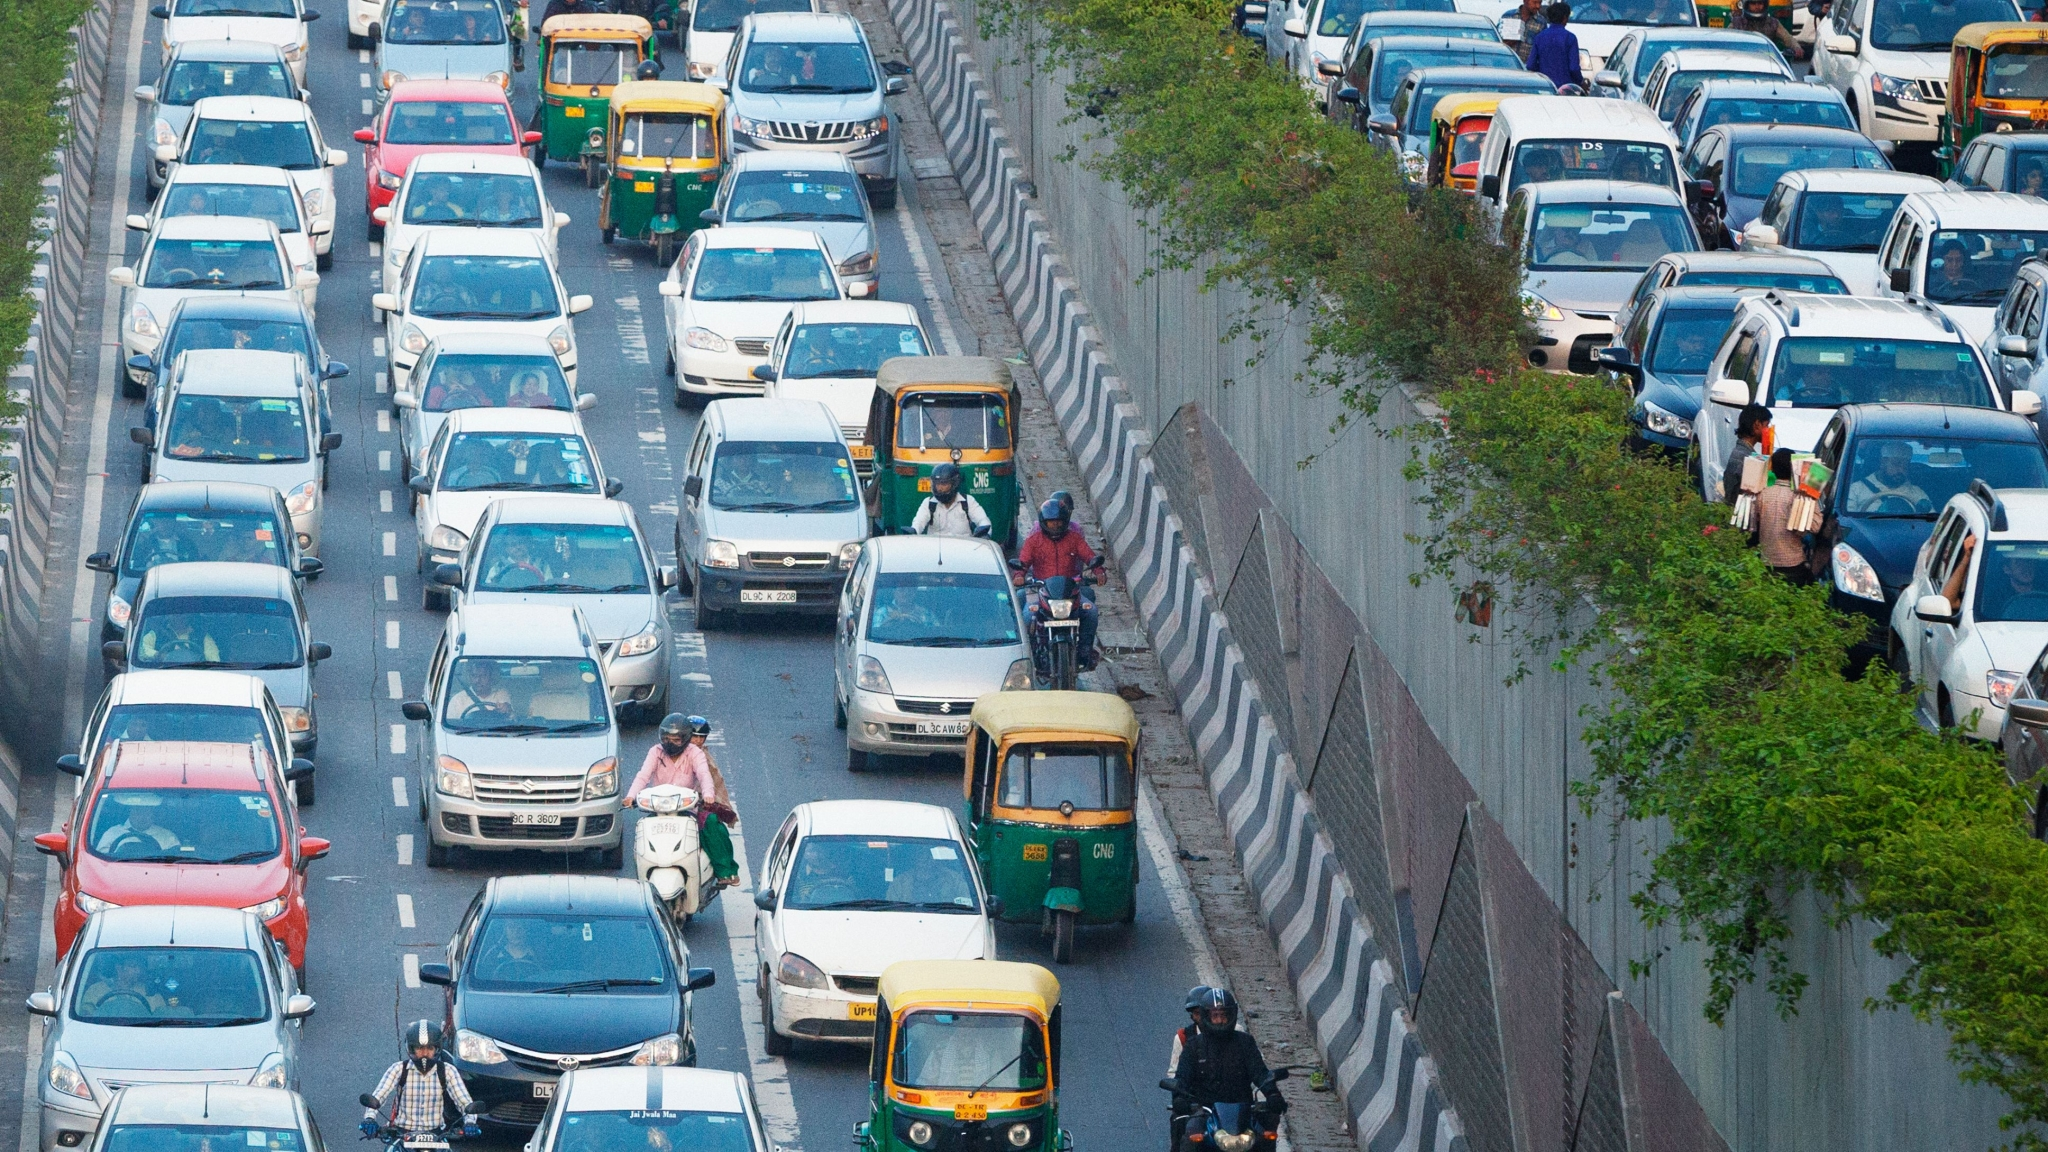 Road Accident Deaths Rise to 1.35 Million Each Year: WHO Report